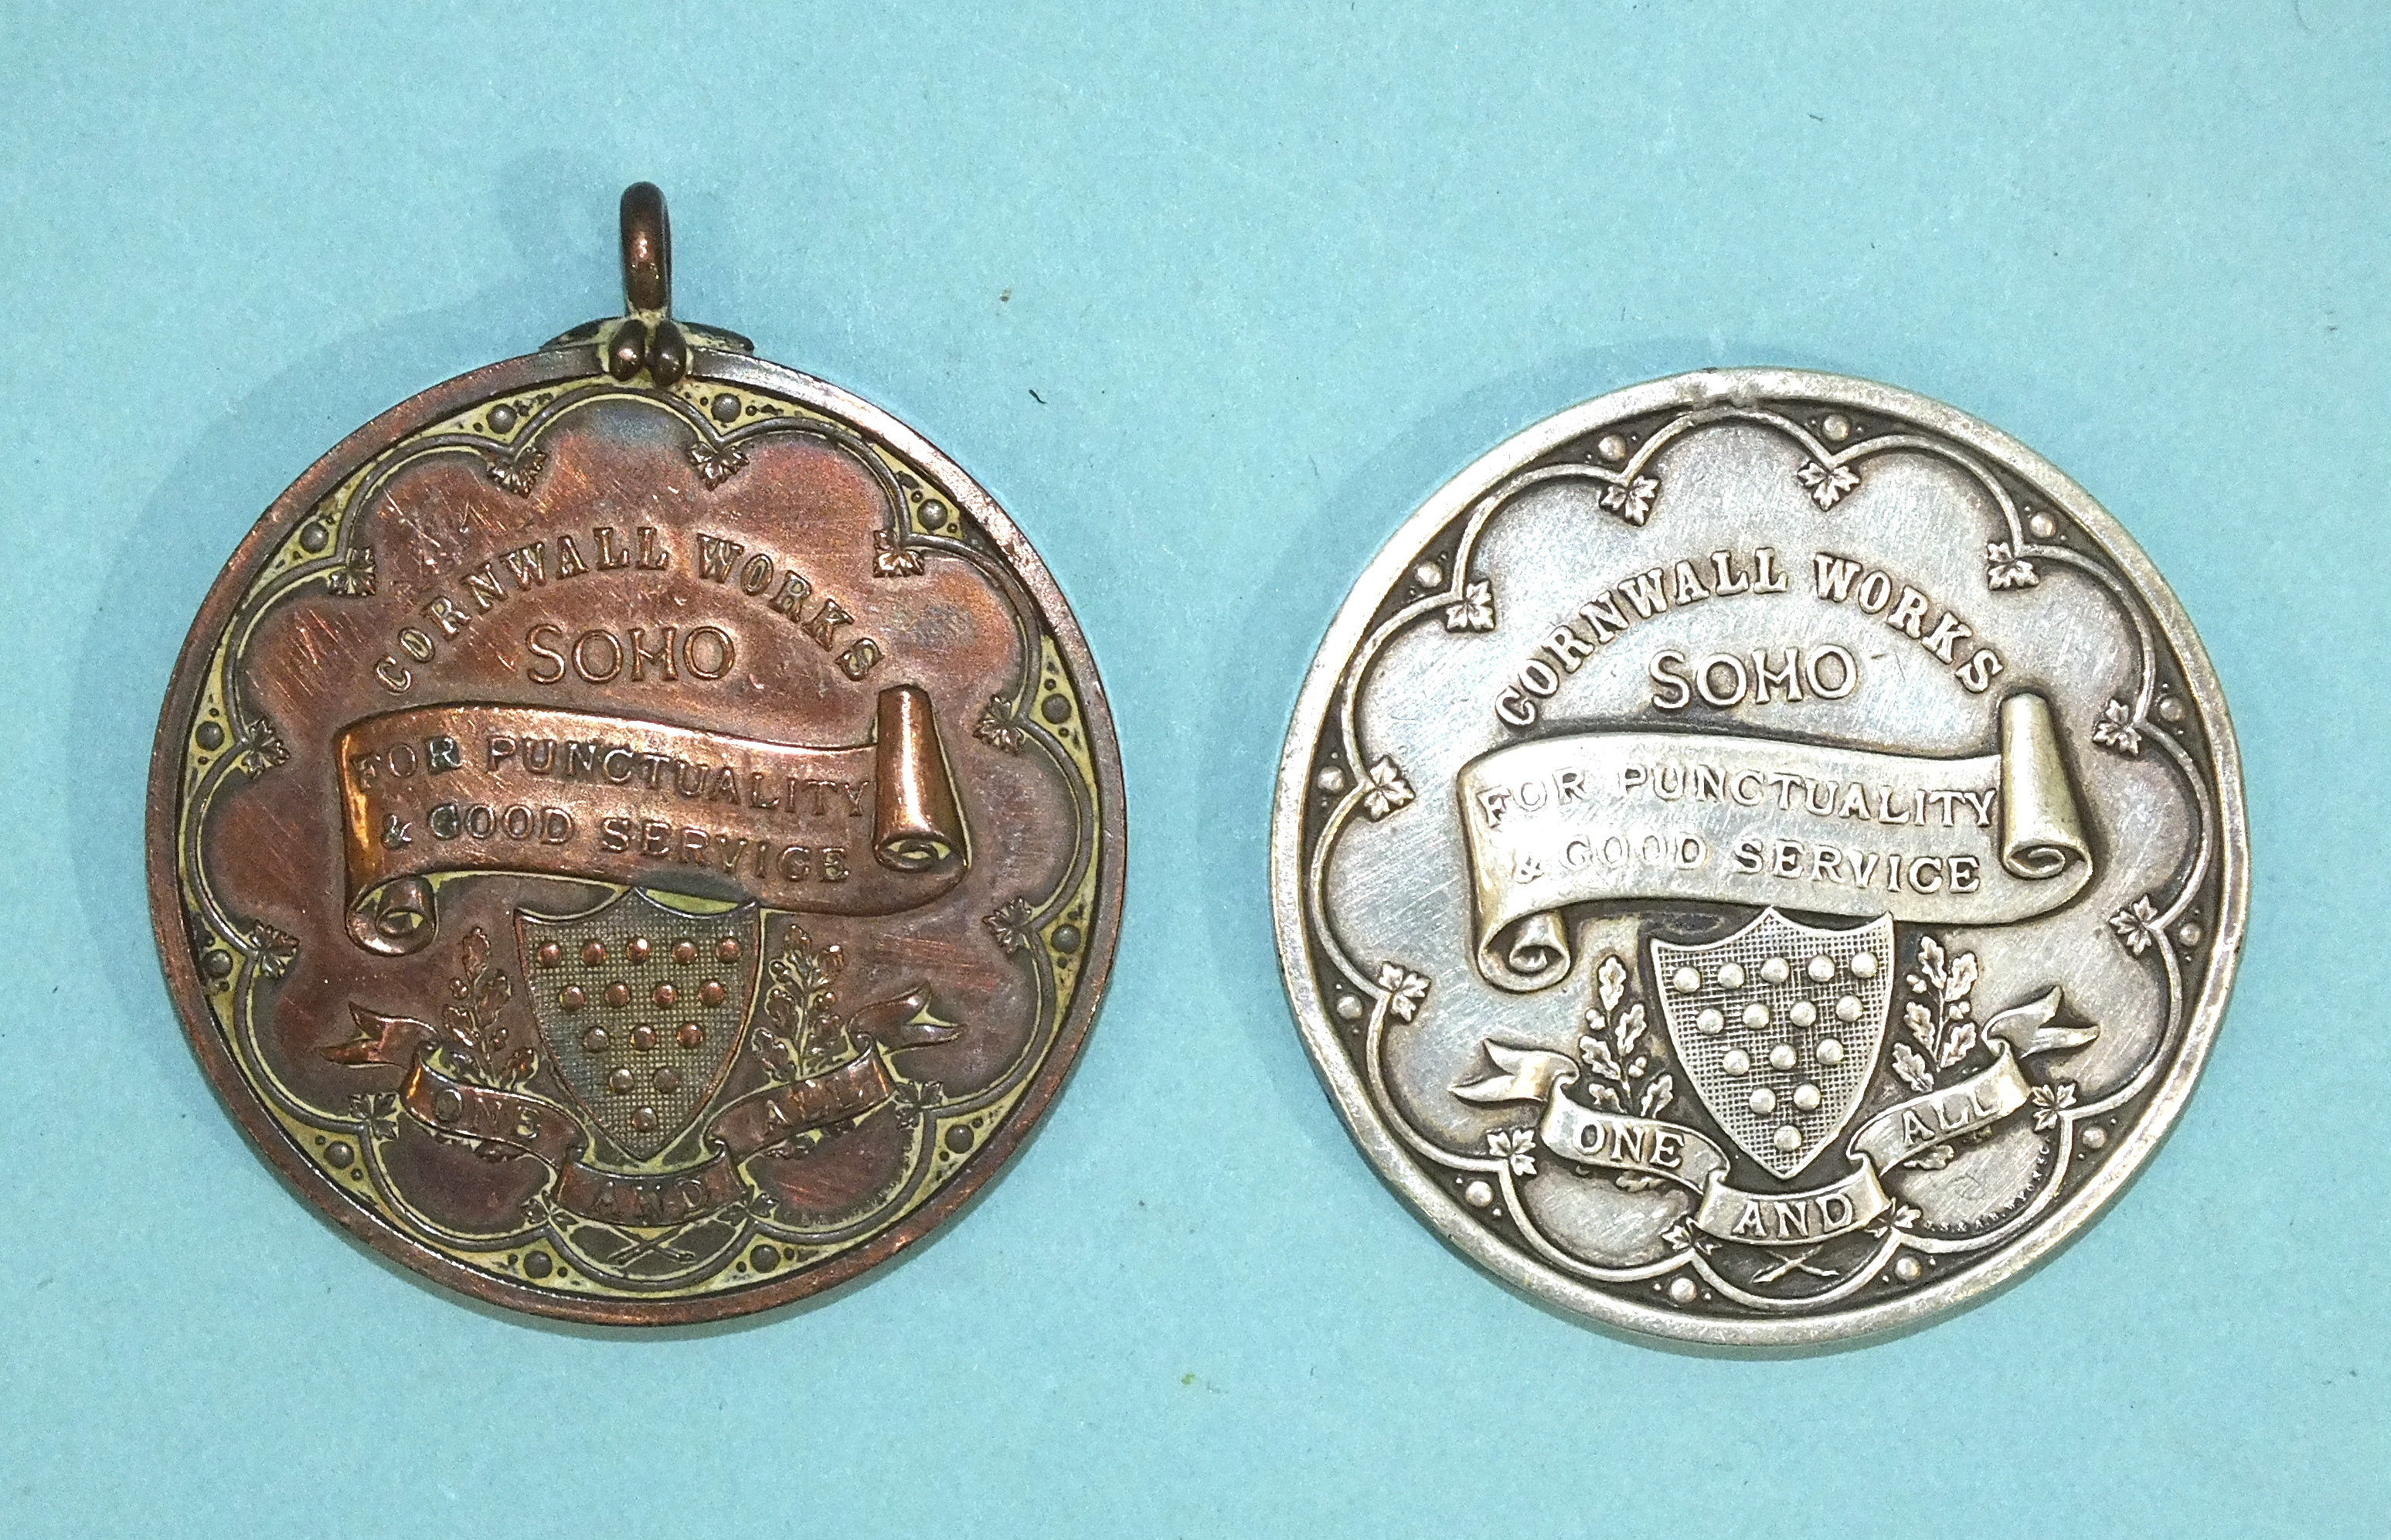 Lot 170 - An antique white metal medallion, Tangye Brothers, Engineers, Birmingham, presented to W Taylor Sept